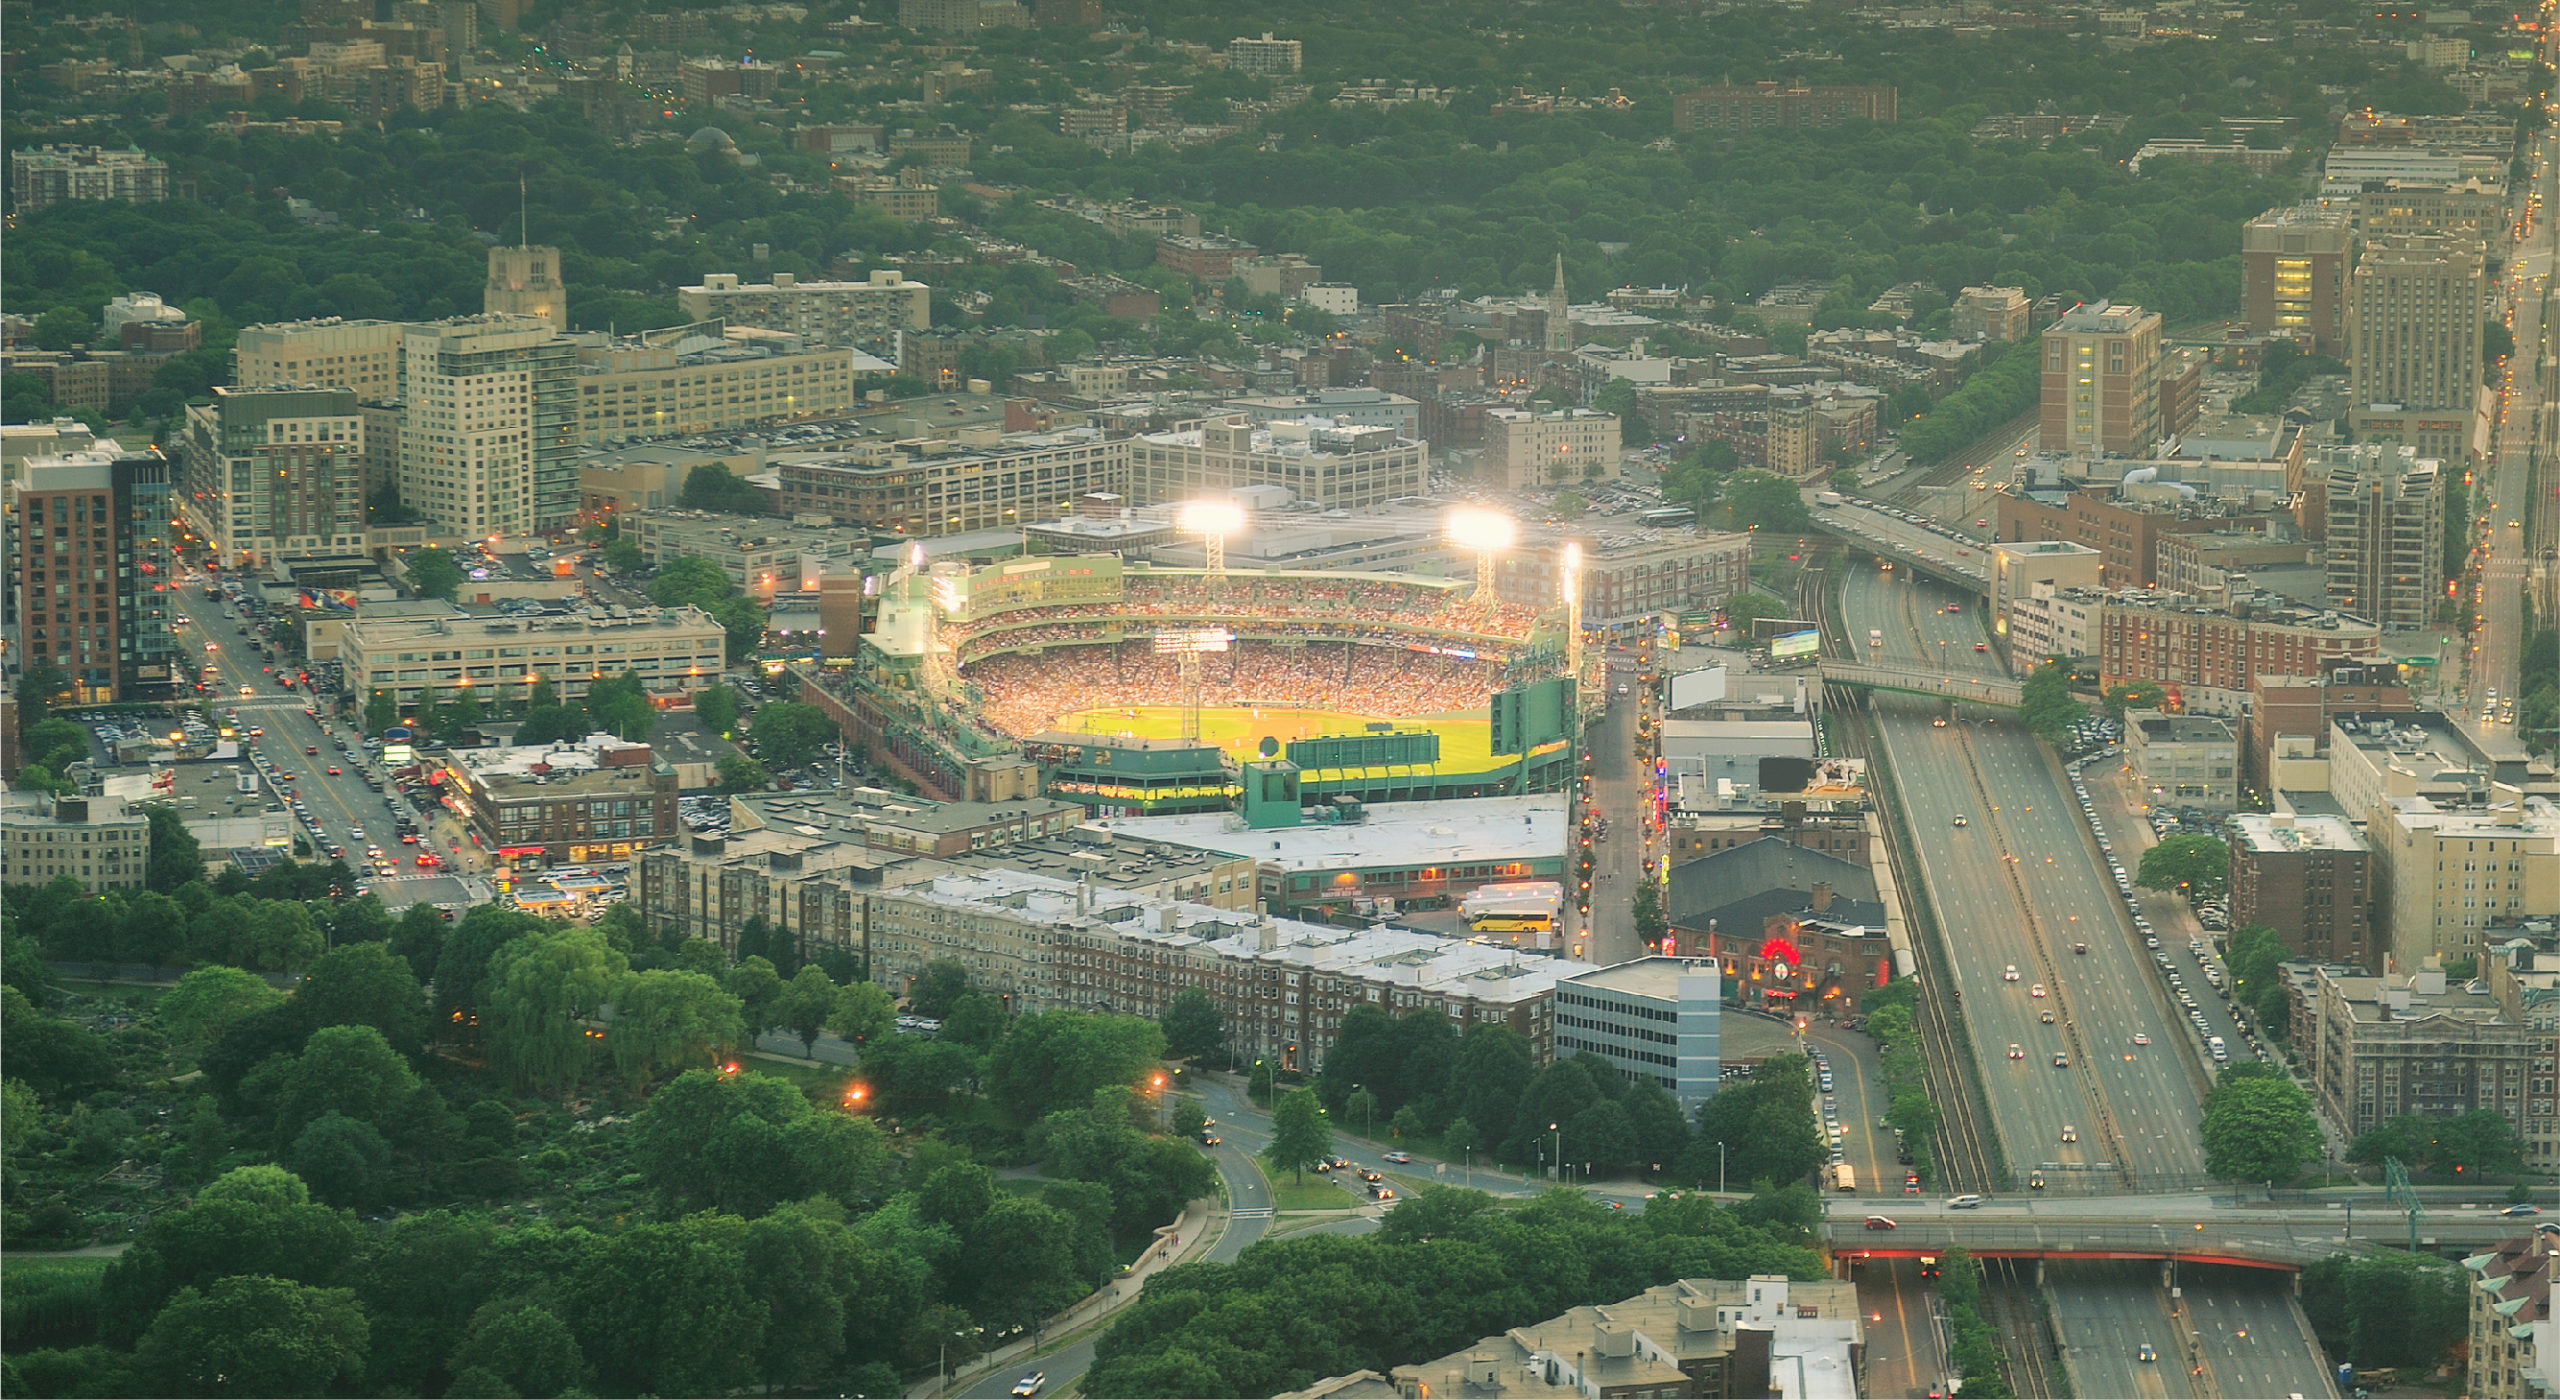 visiting fenway park aerial view